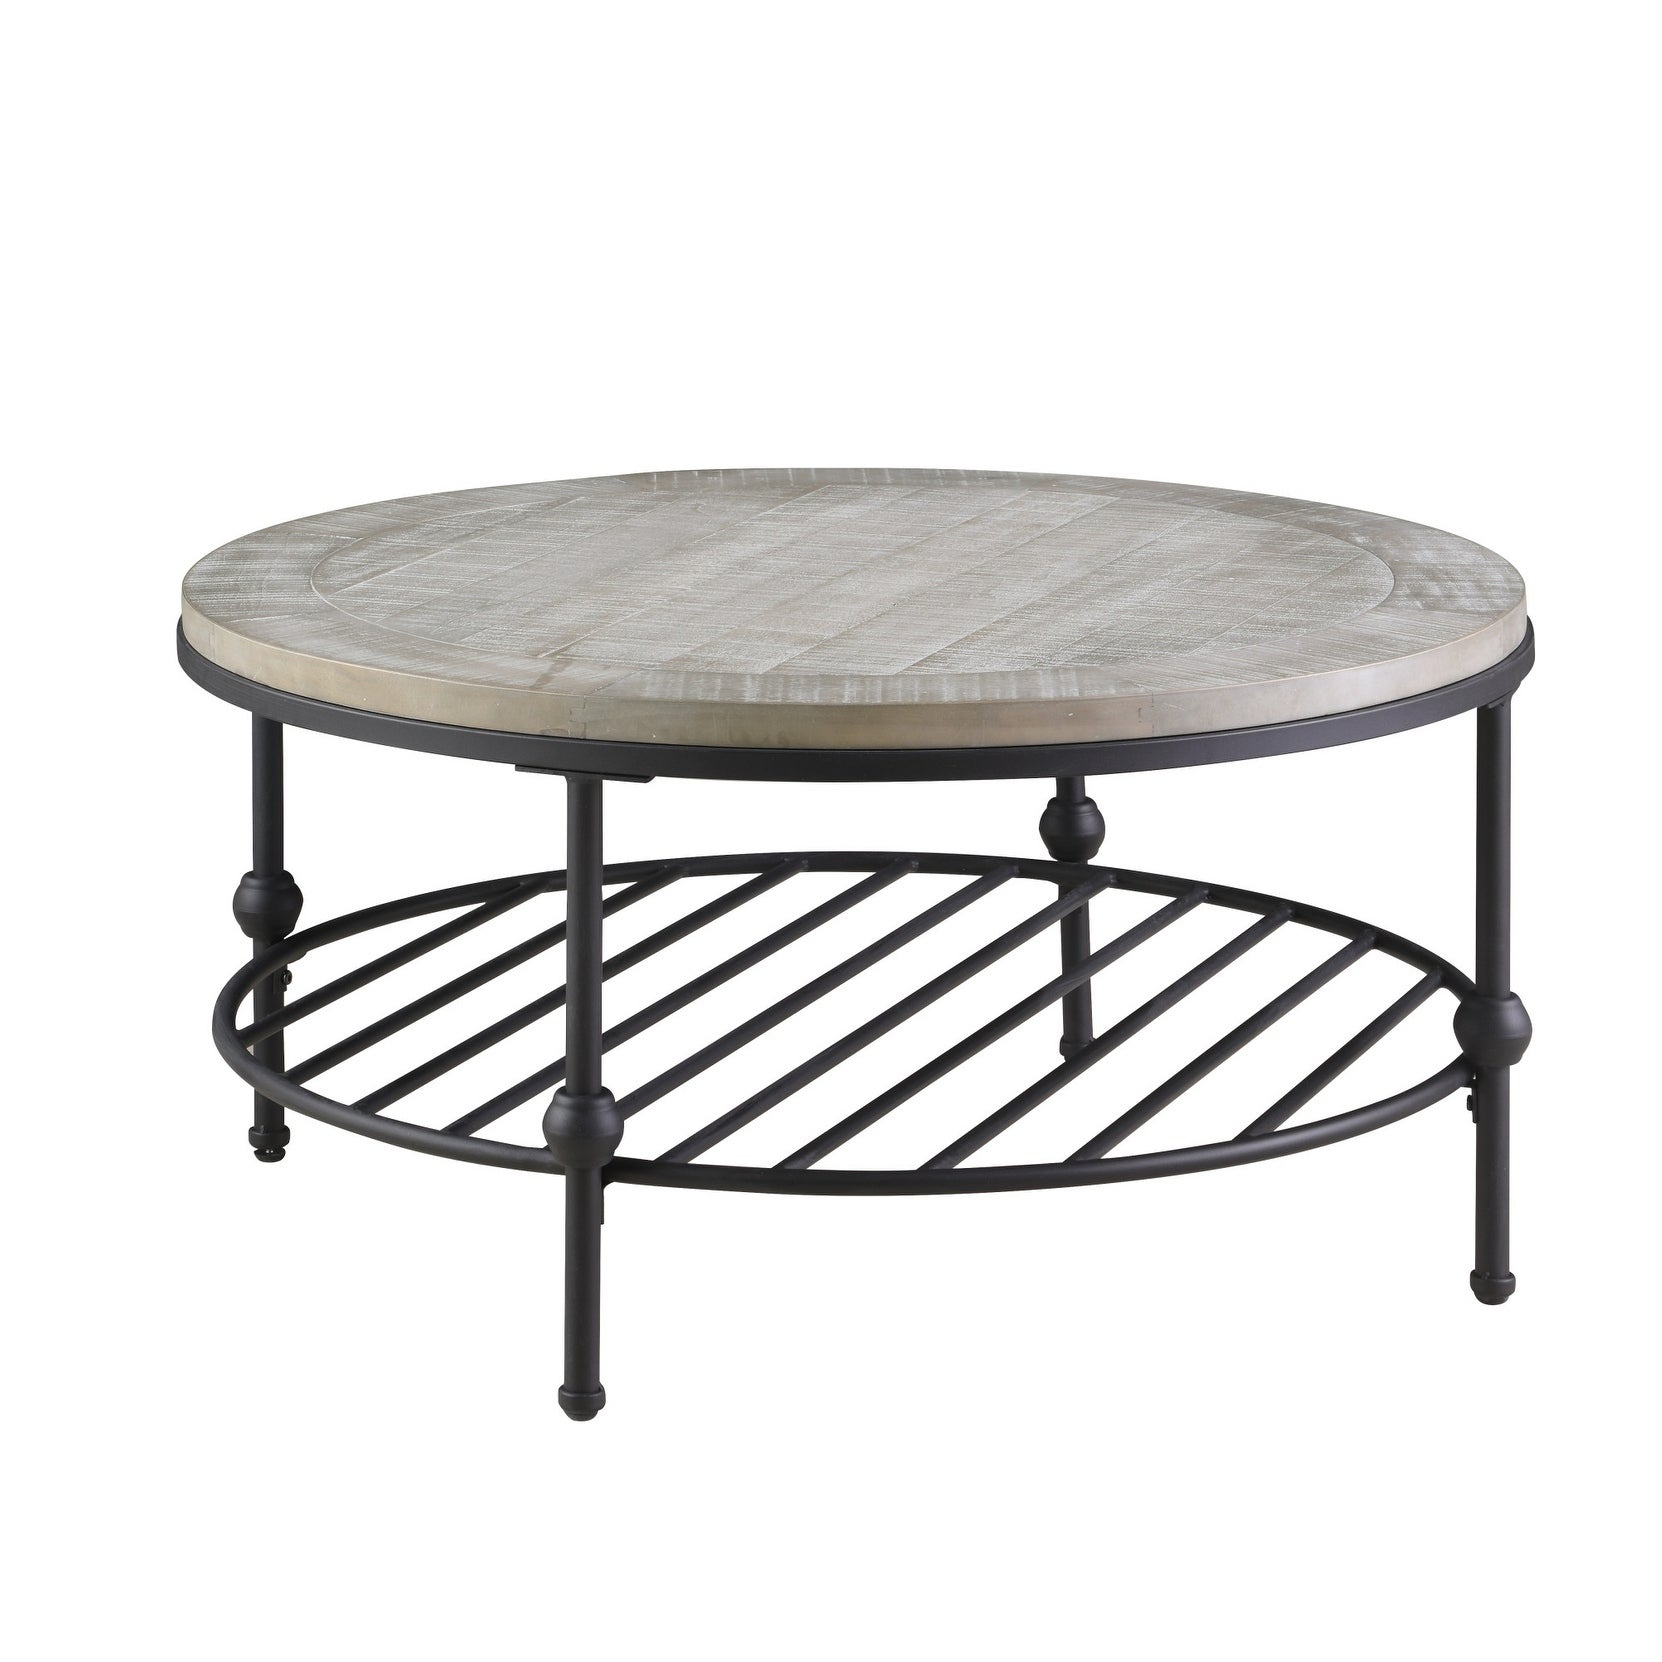 Round Coffee Table Grey 9